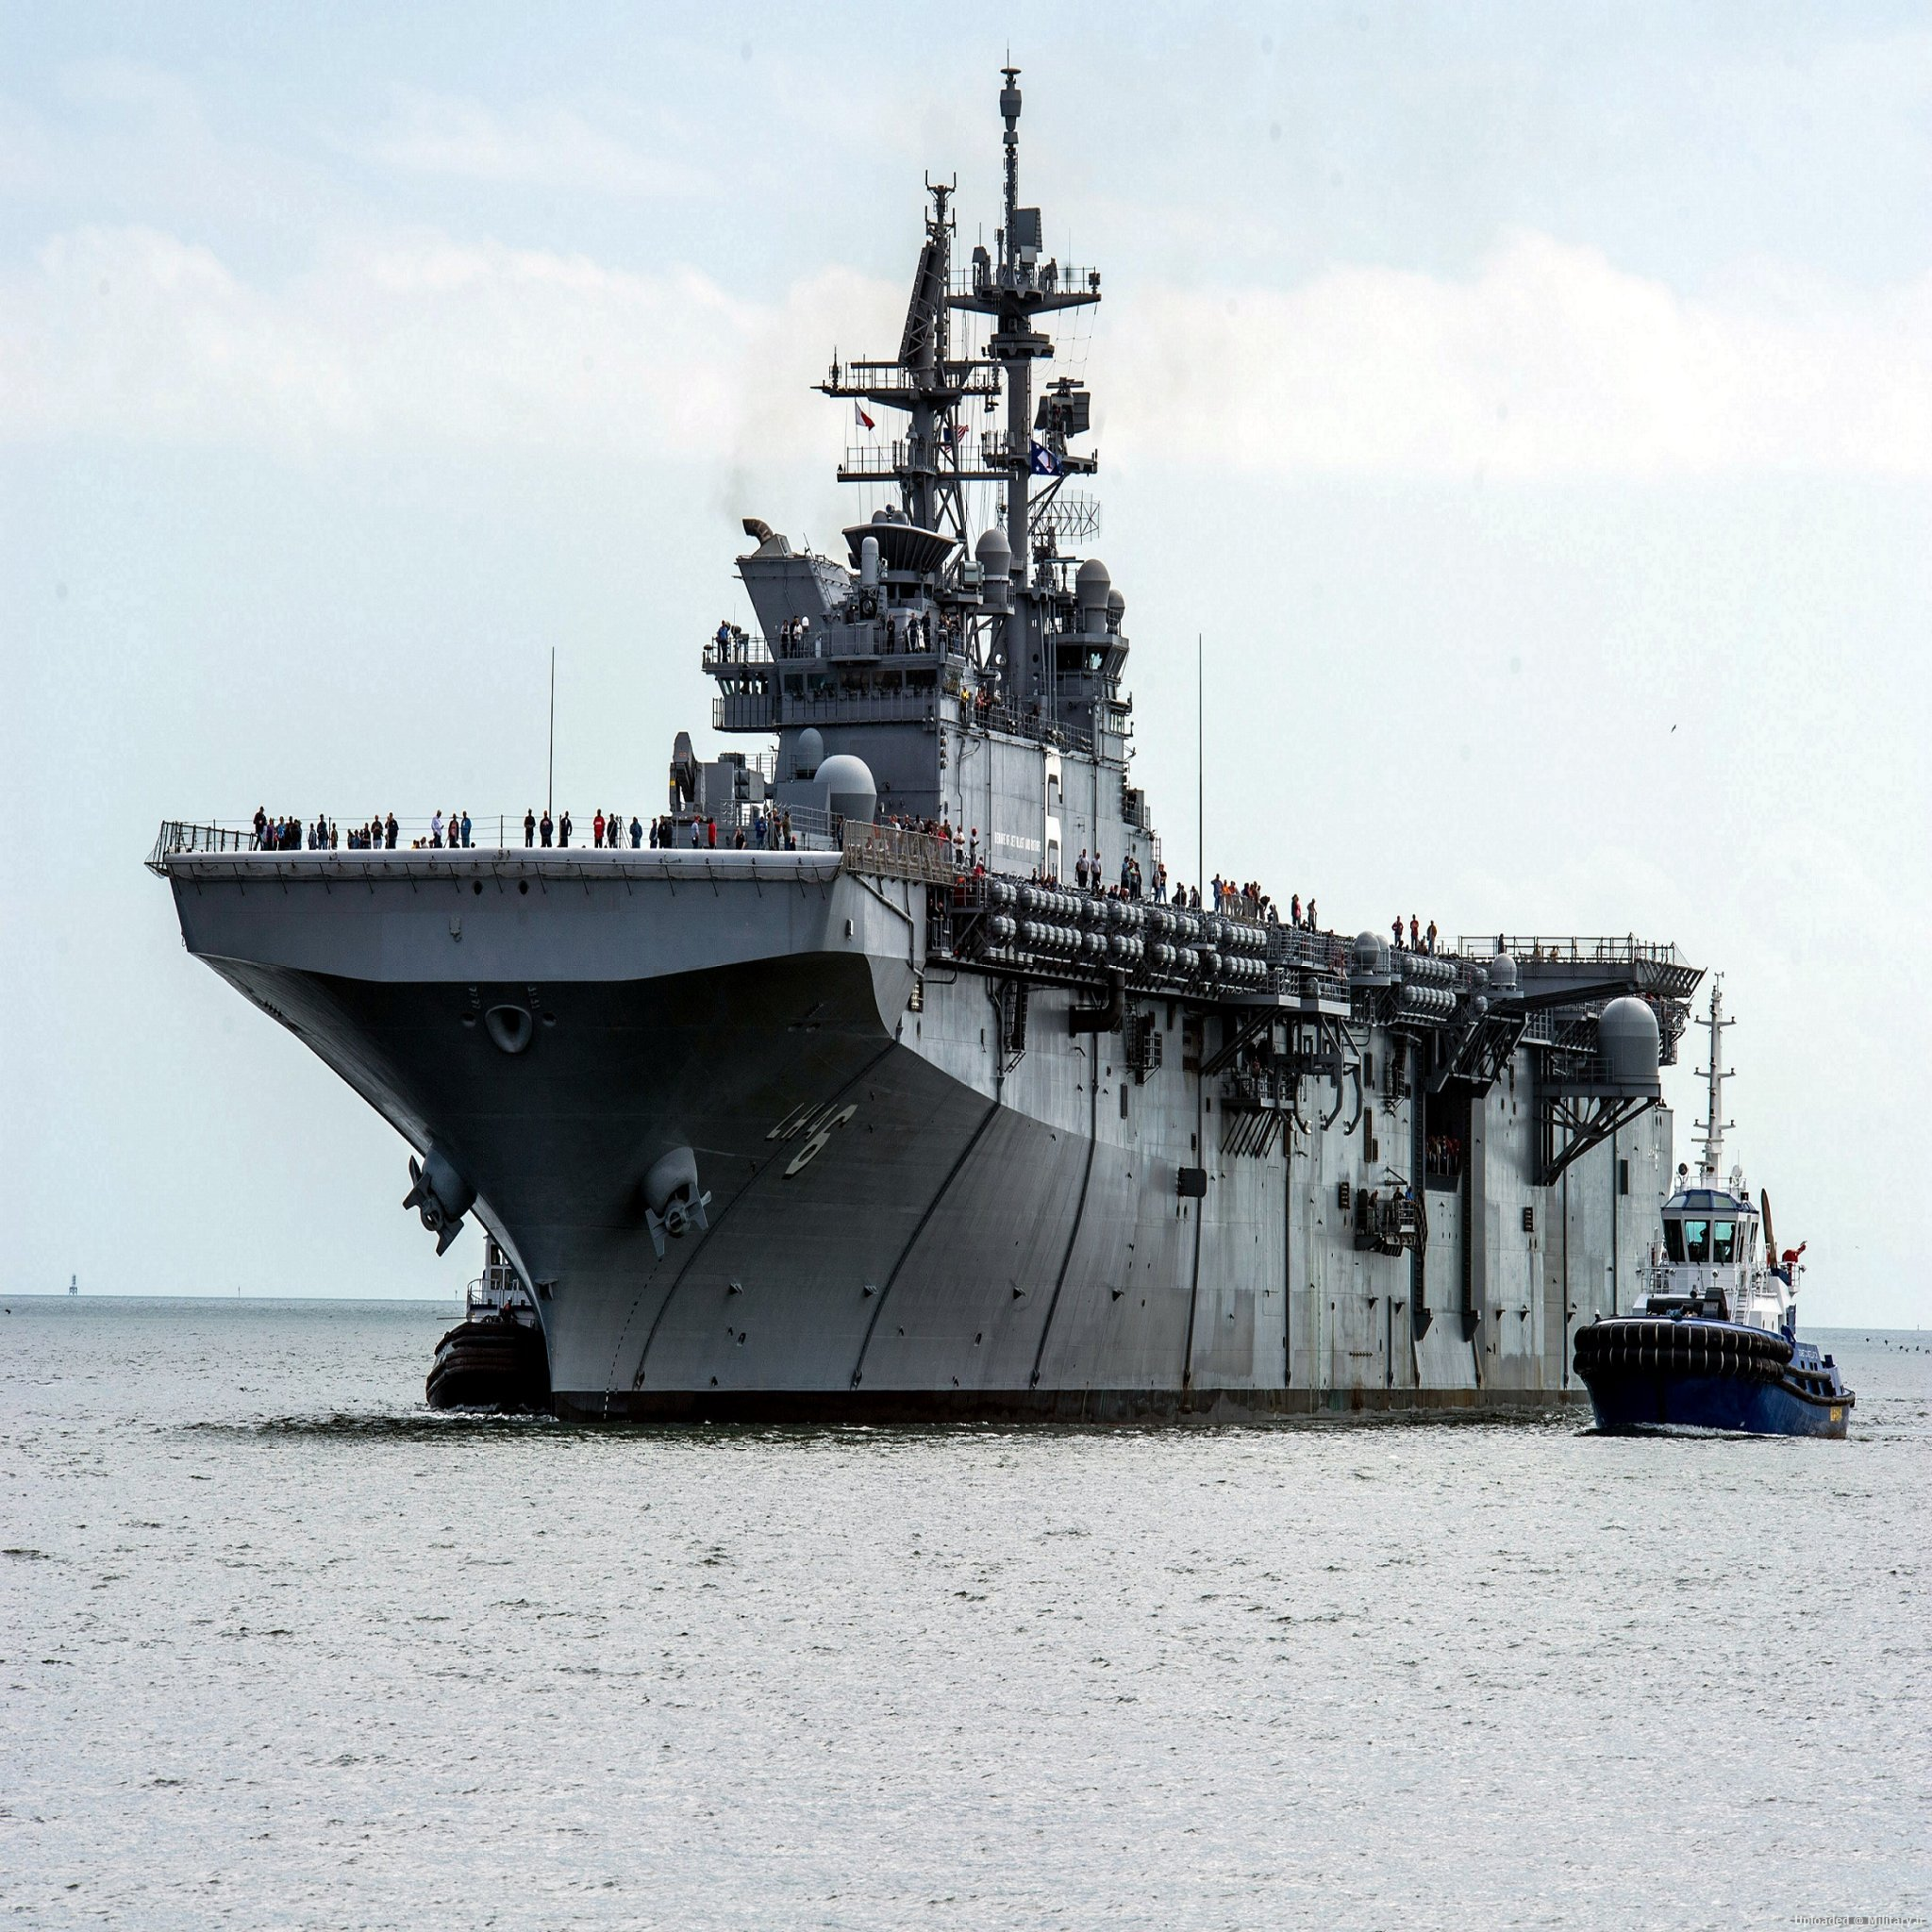 USS_America_28LHA-629_off_Pascagoula_in_